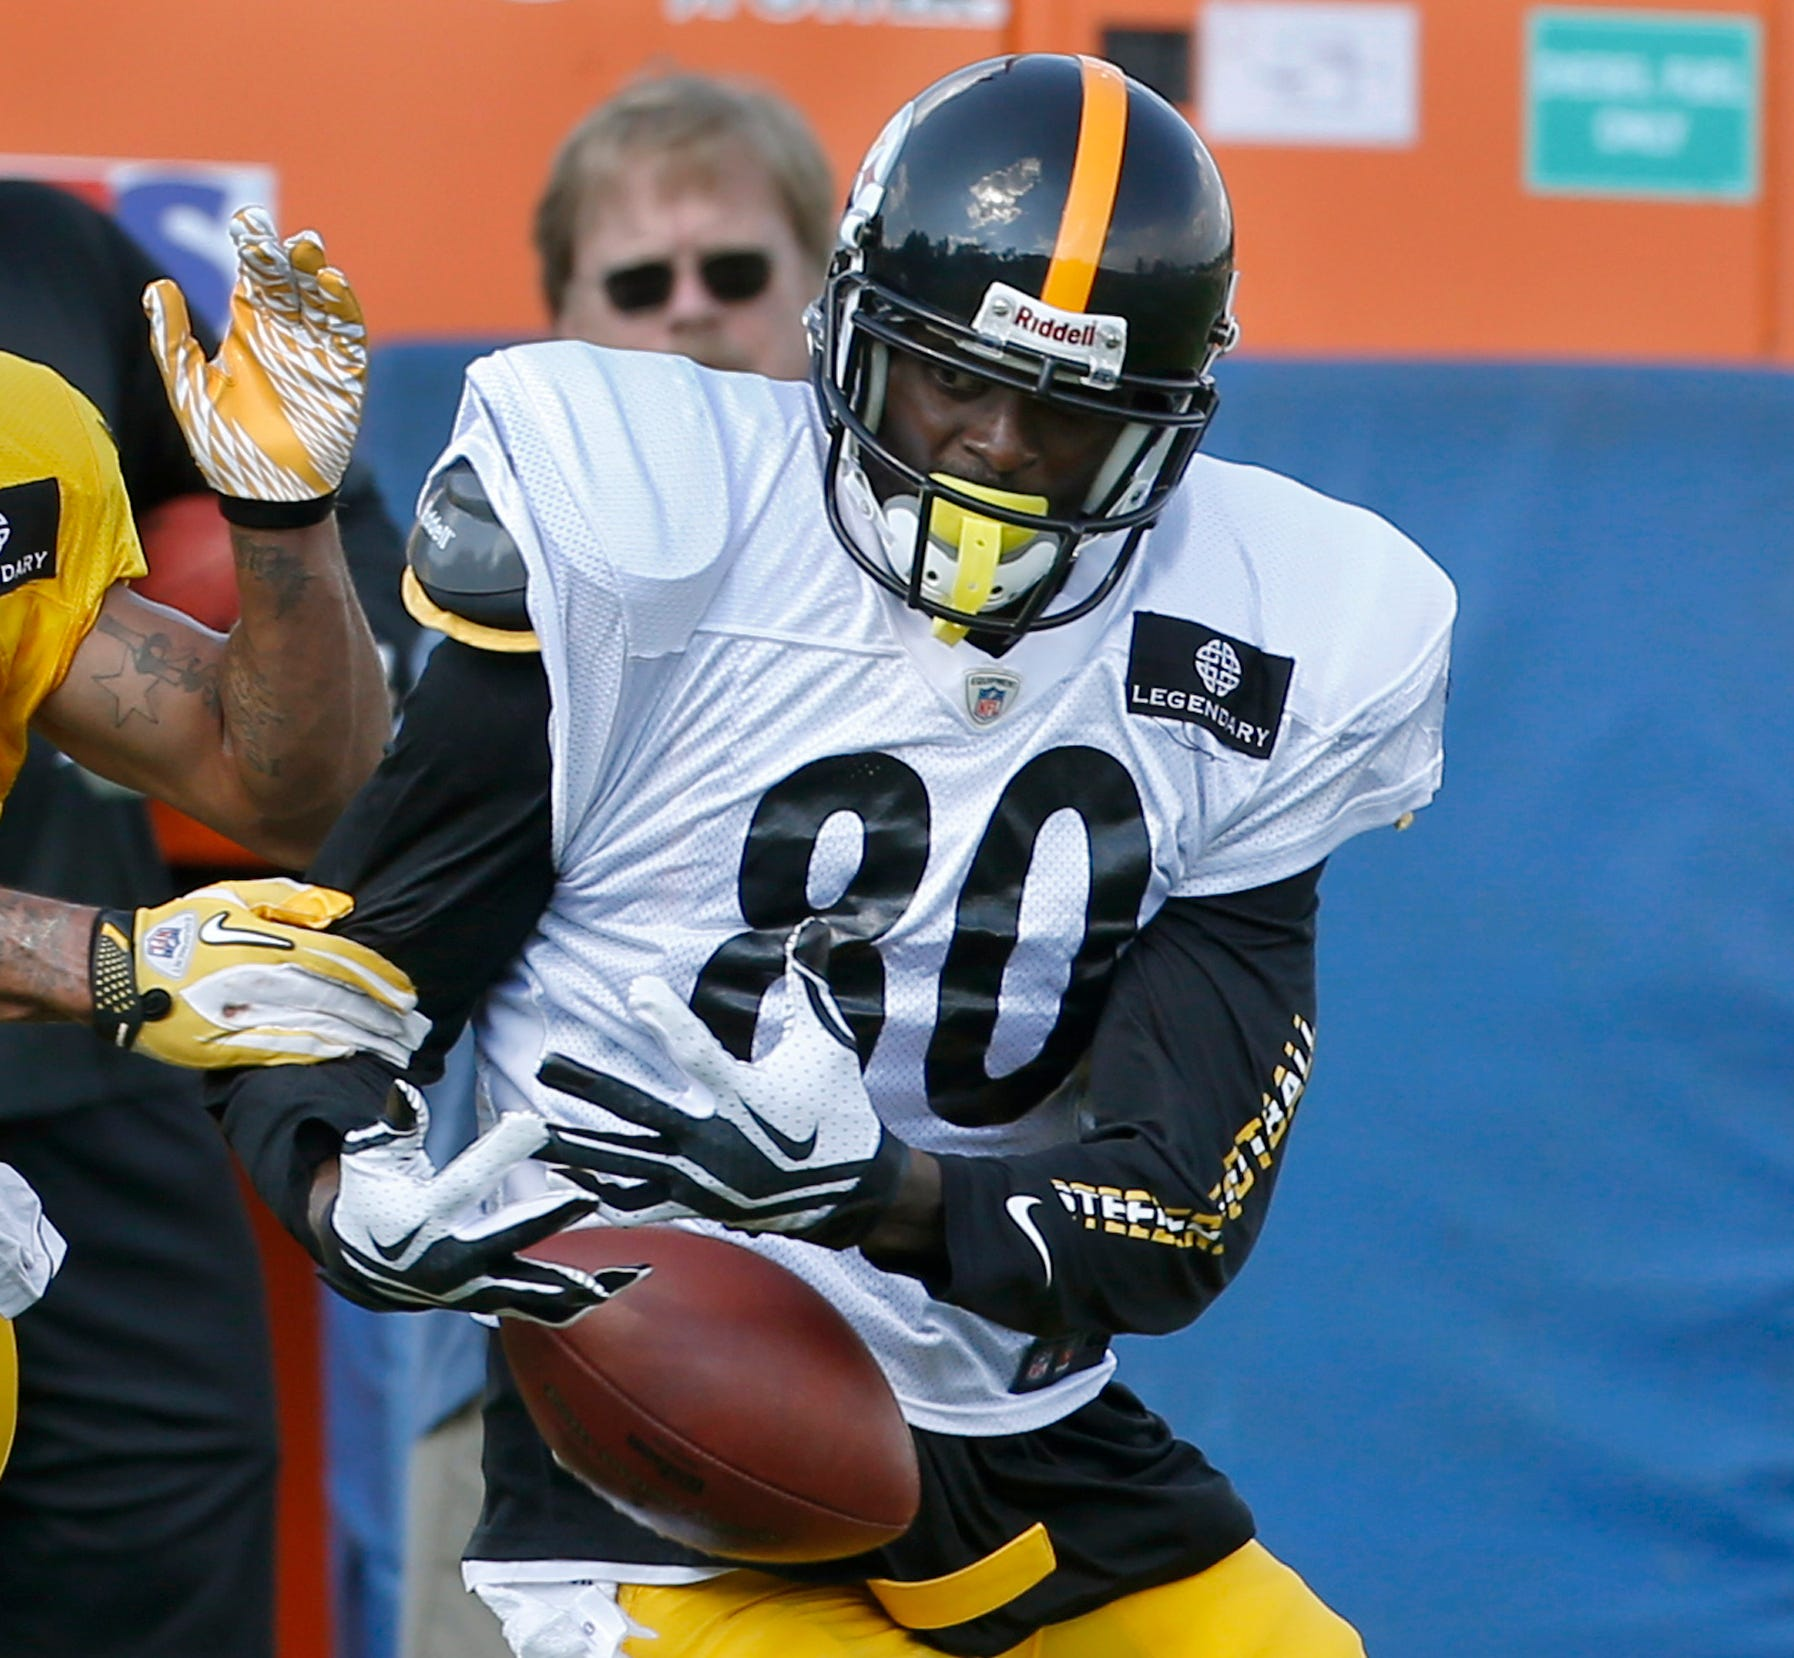 Steelers WR Plaxico Burress (80) has 553 career catches but may not reach 554 after tearing a rotator cuff in camp.